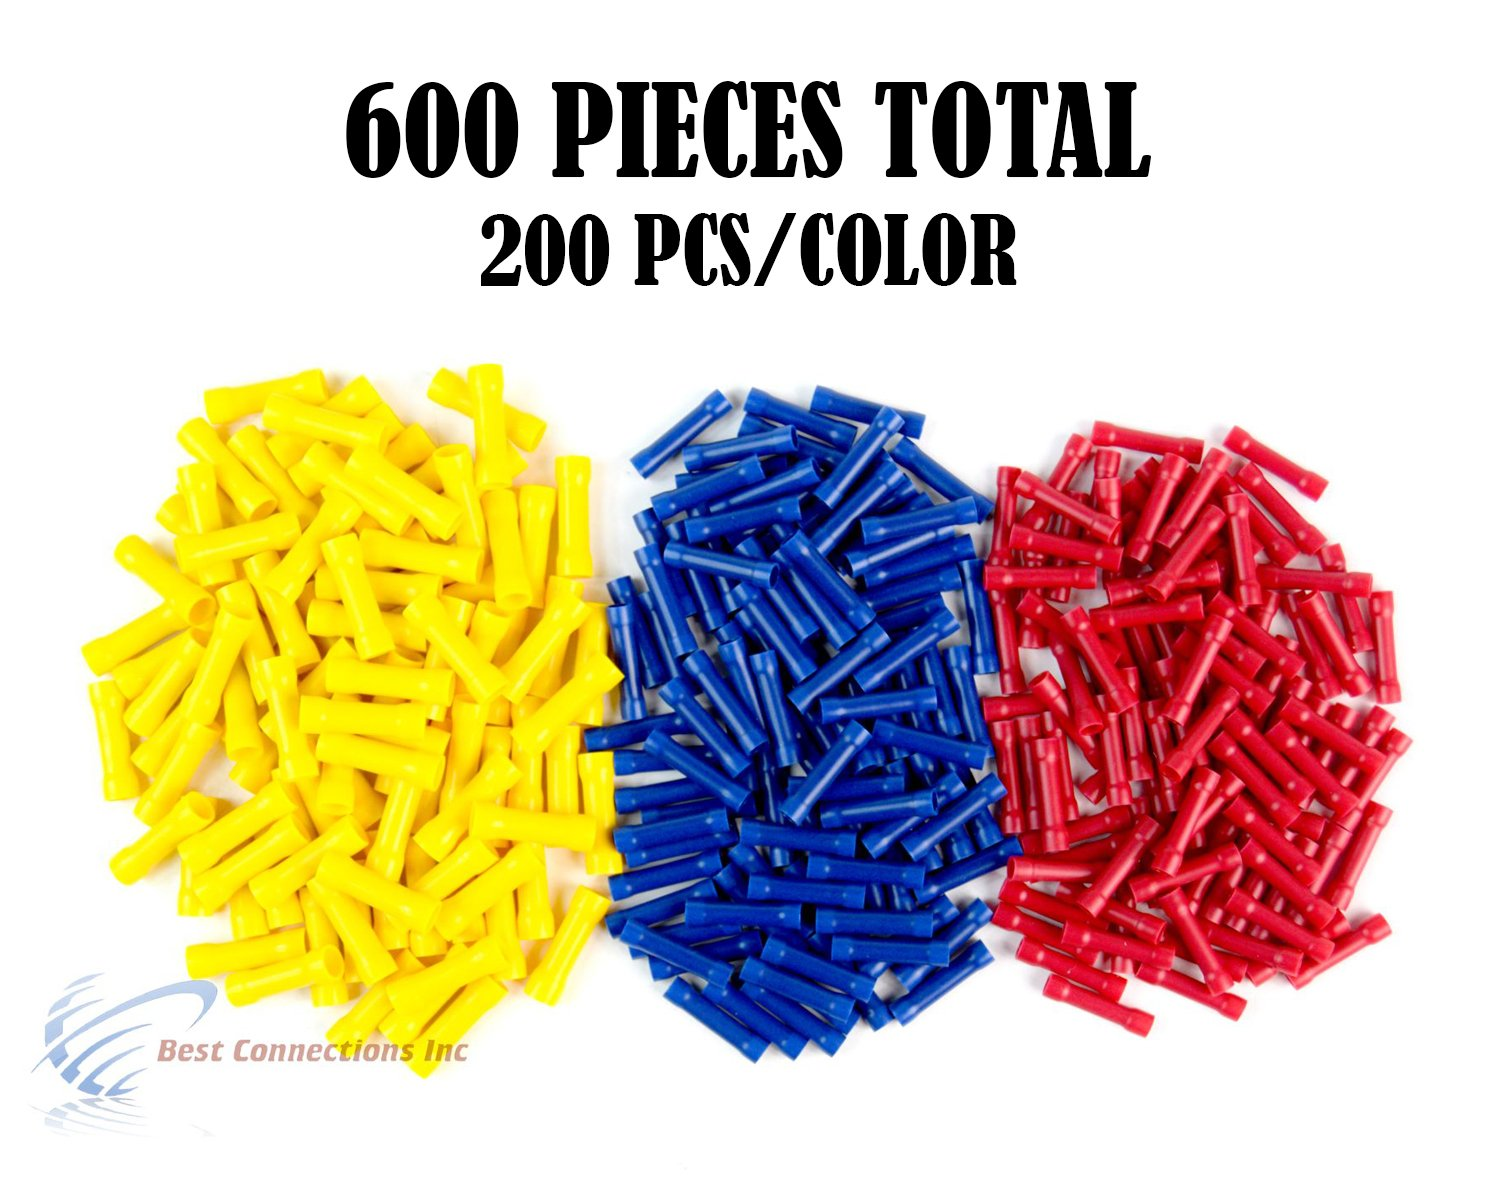 600 PCS Red Blue Yellow Vinyl Butt Connector 22-10 Gauge 12V Electrical Install